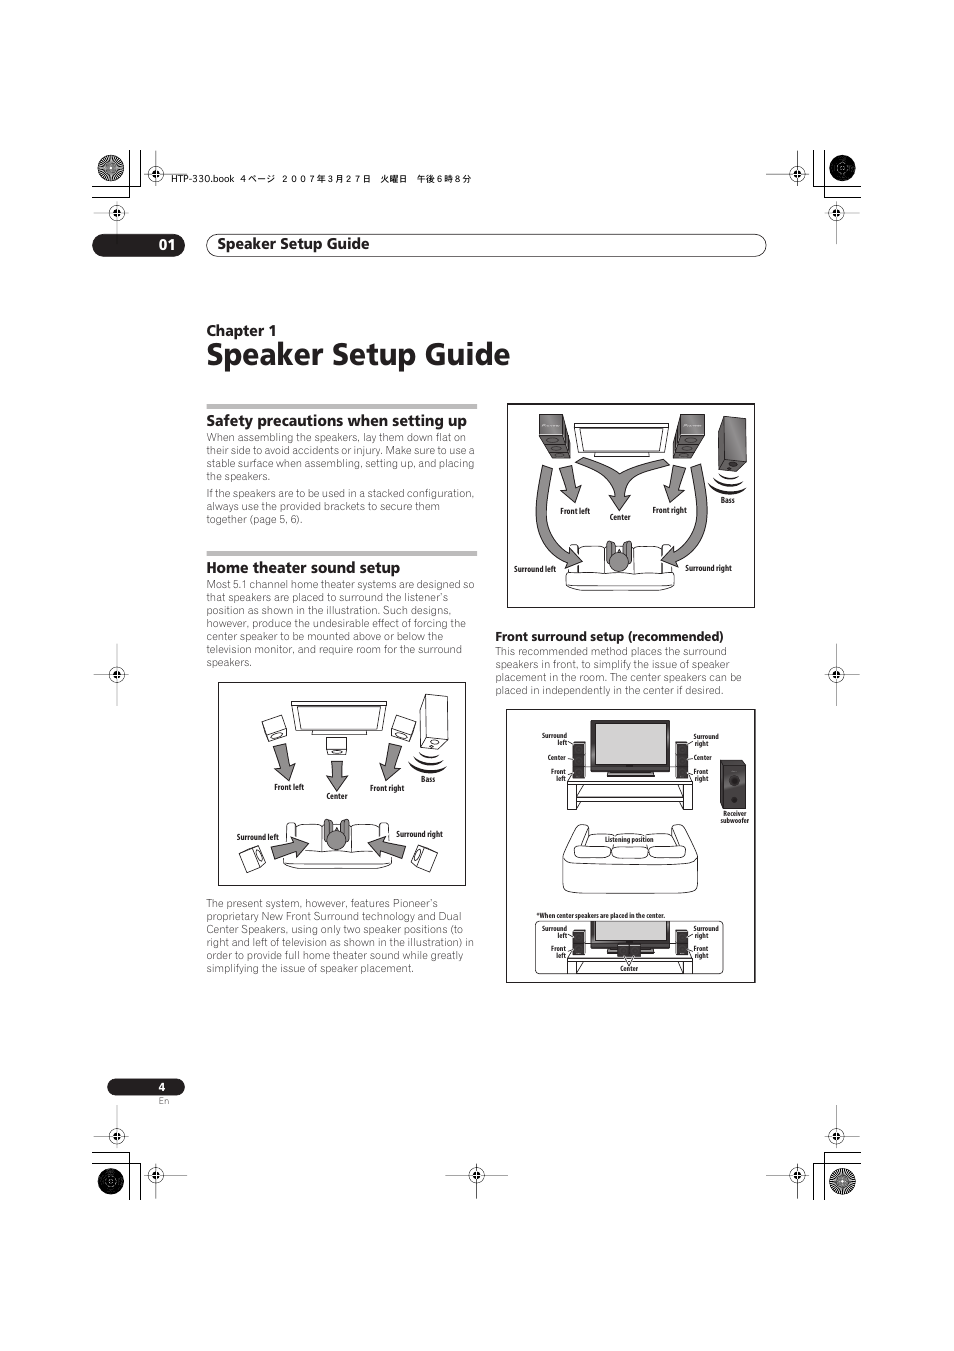 01 speaker setup guide, Safety precautions when setting up, Home theater sound  setup |